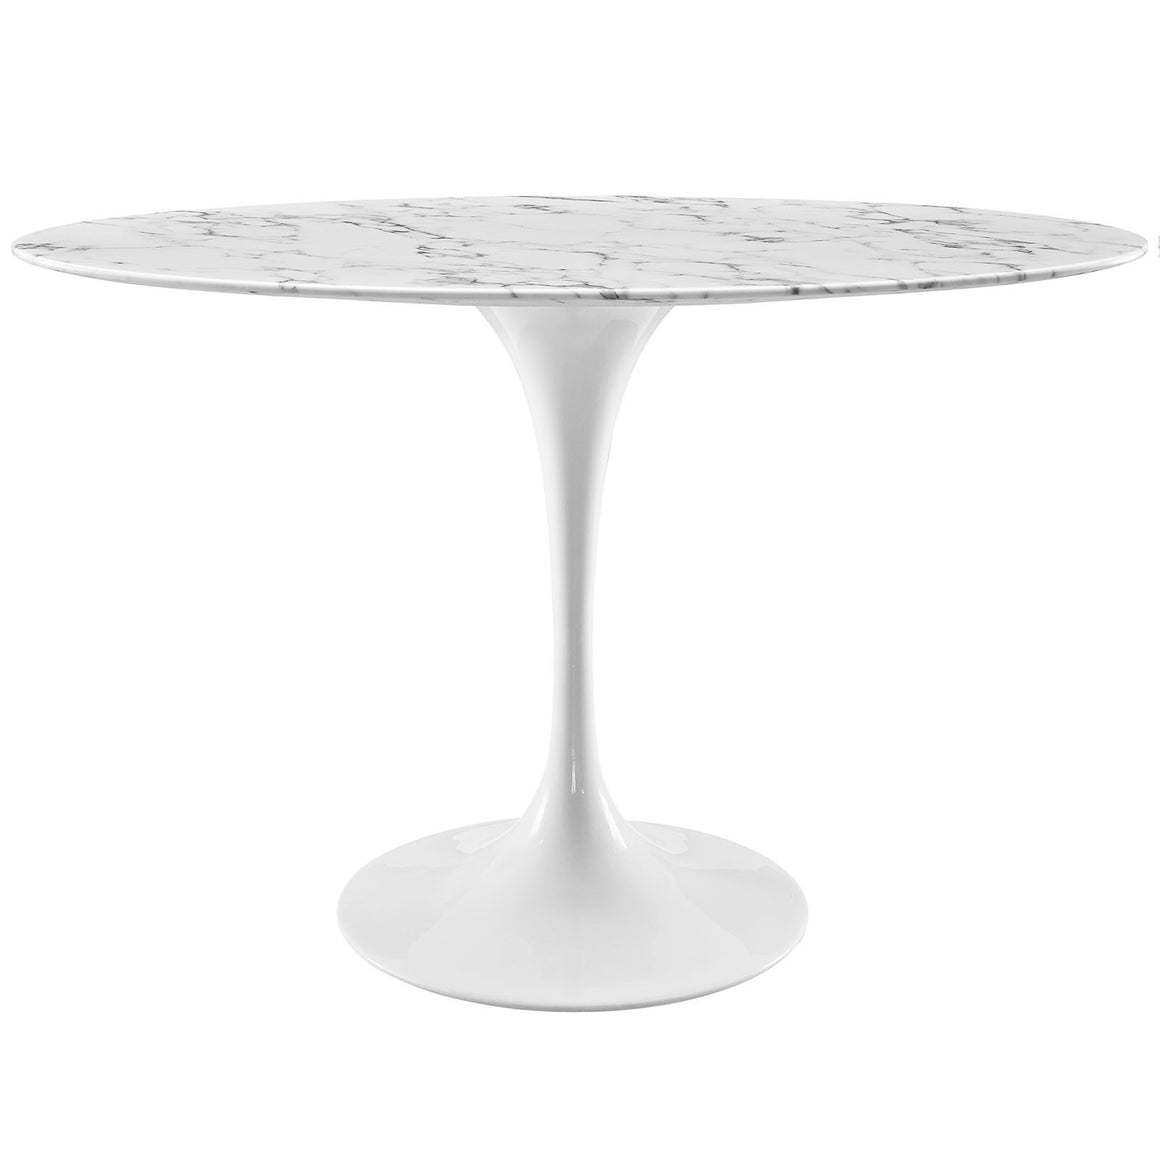 "Lippa 48"" Oval-Shaped Artificial Marble Dining Table"